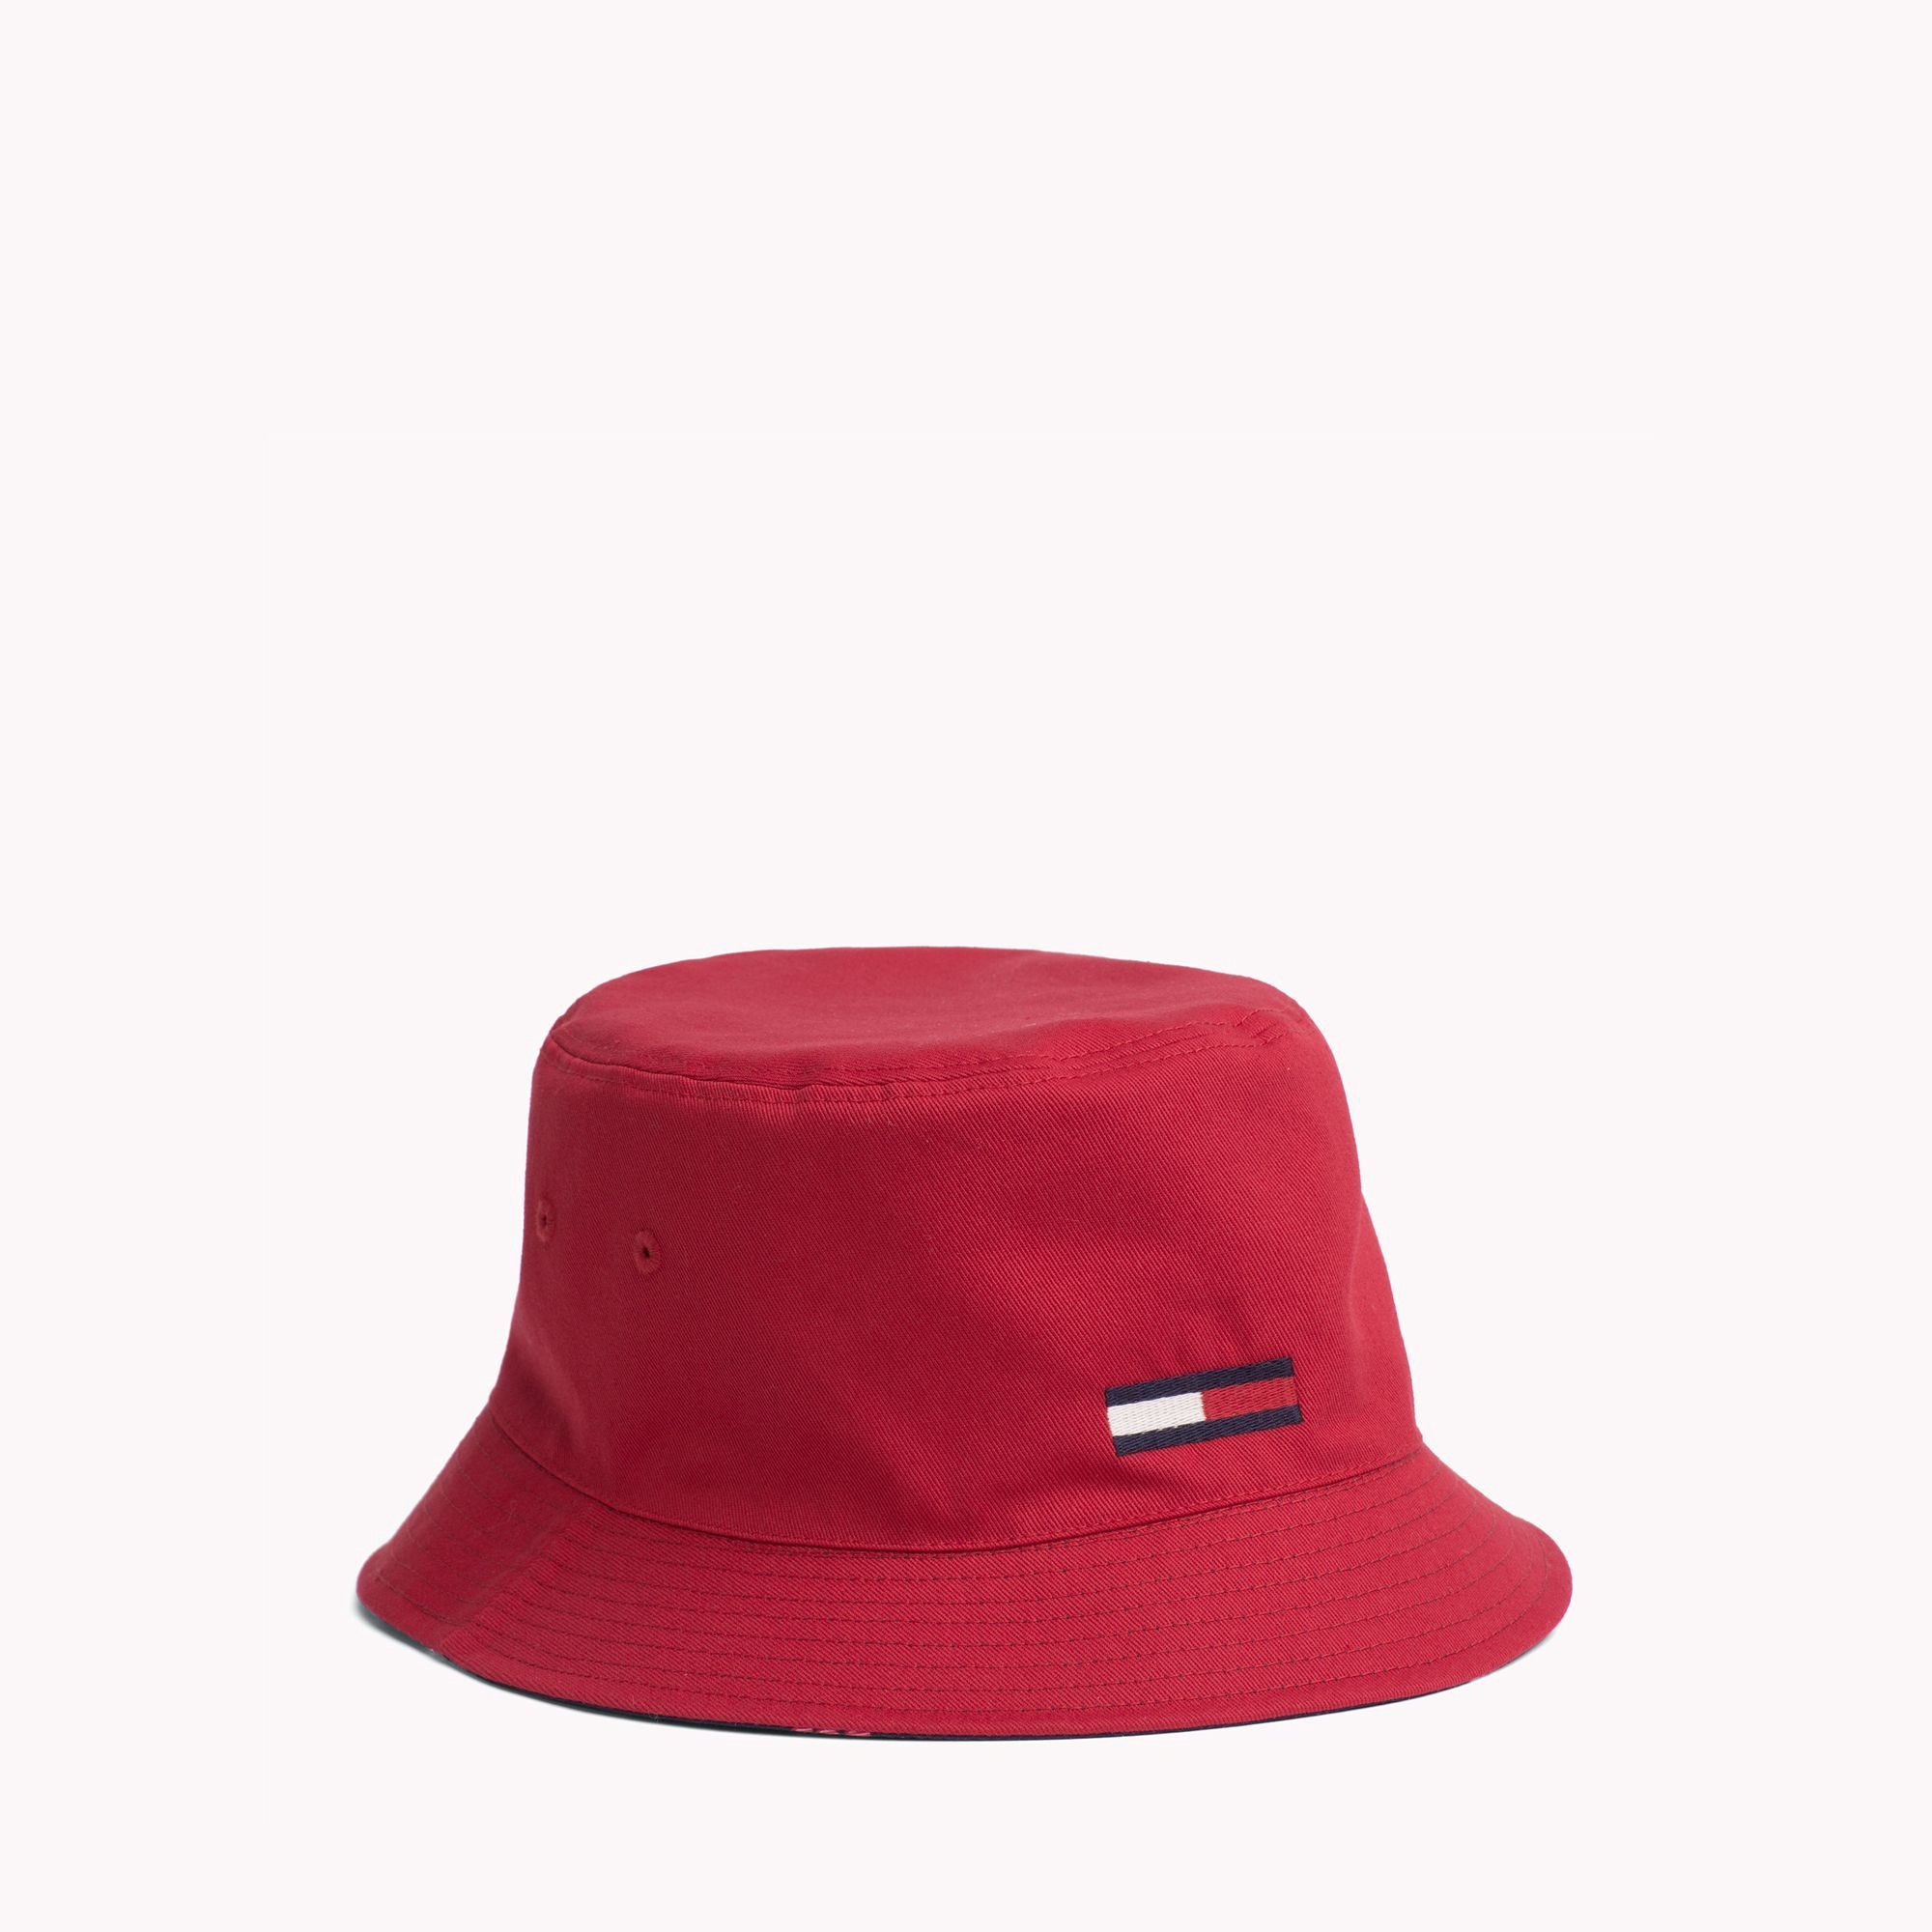 9ccfab5de6e50e Tommy Hilfiger Reversible Bucket Hat - Navy/Red Os | Products in ...